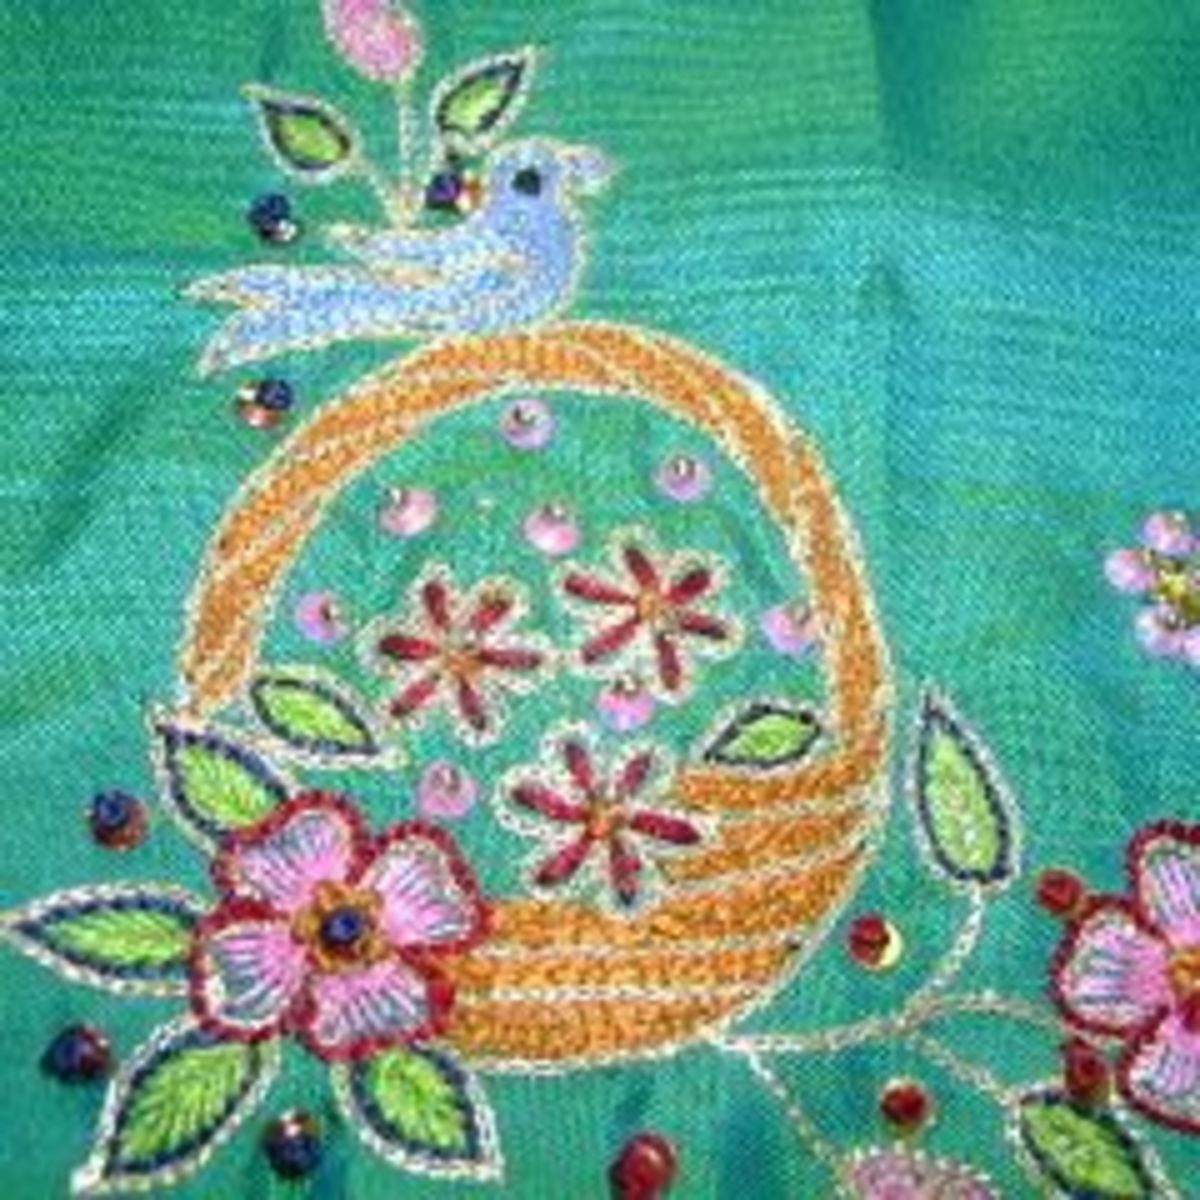 Aari or khatla Embroidery done on a cot  originated in Barabanki, Uttar Pradesh.